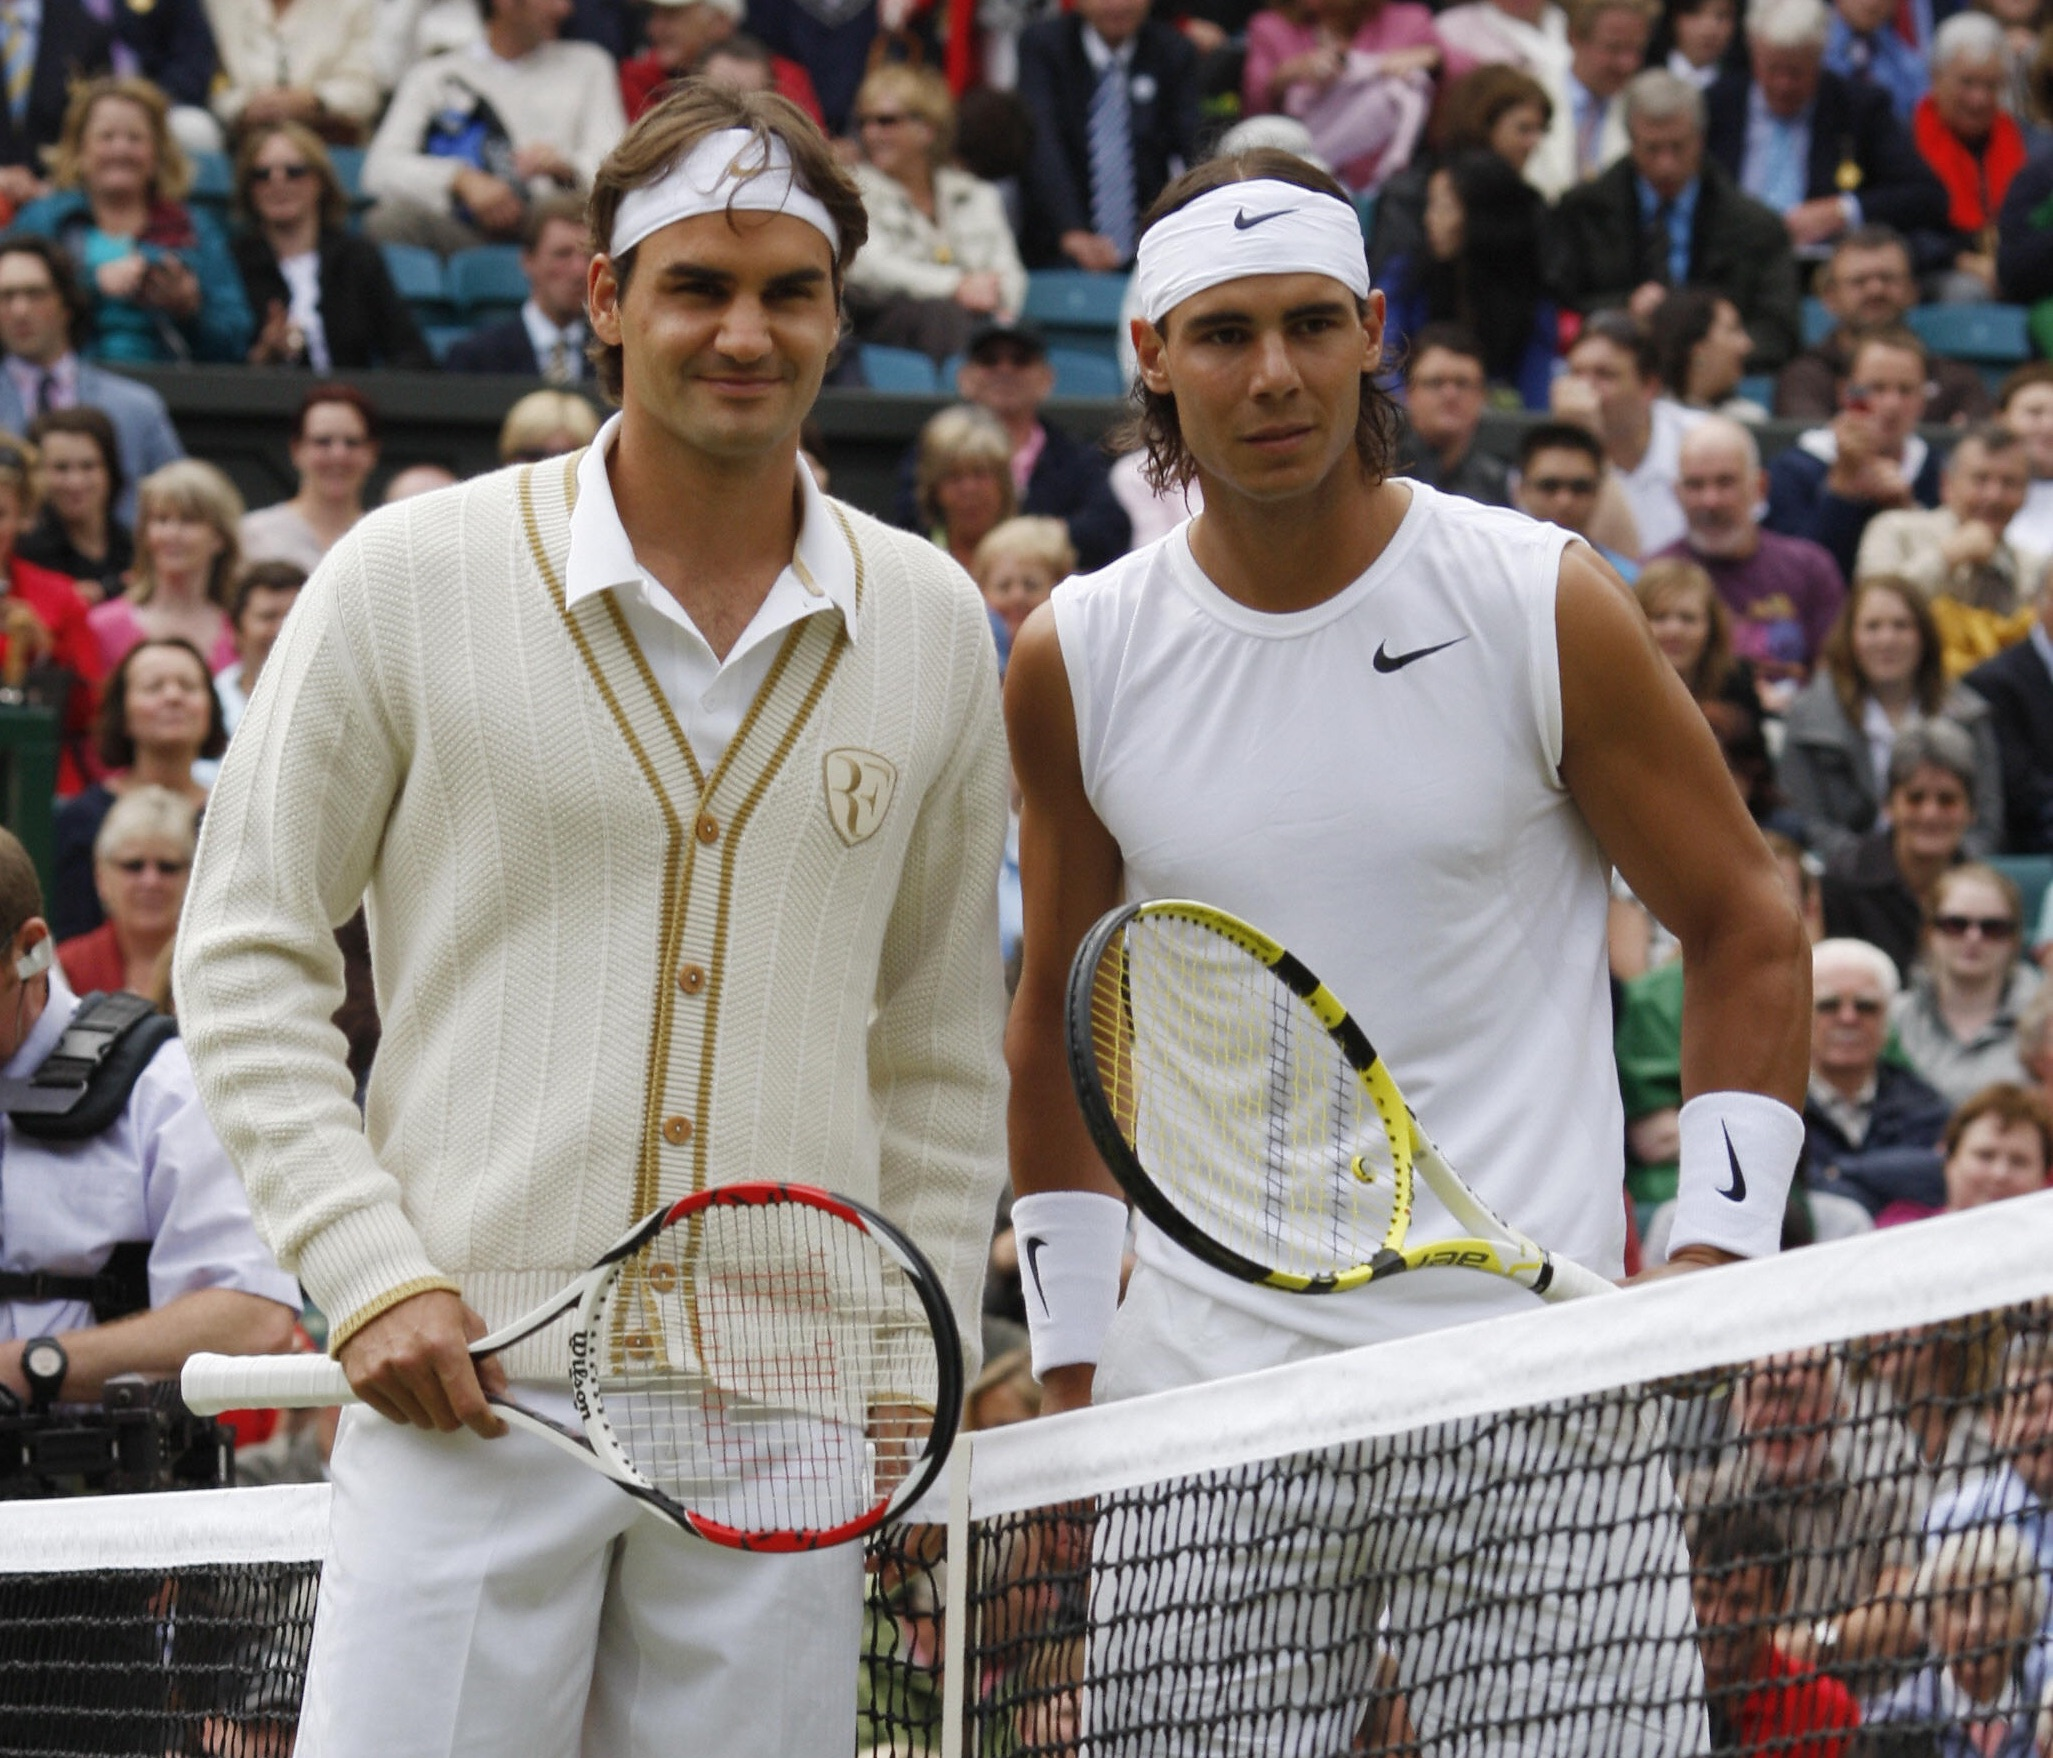 Documentary Success Without Netflix? The Tennis Channel Thinks It Can Pull It Off